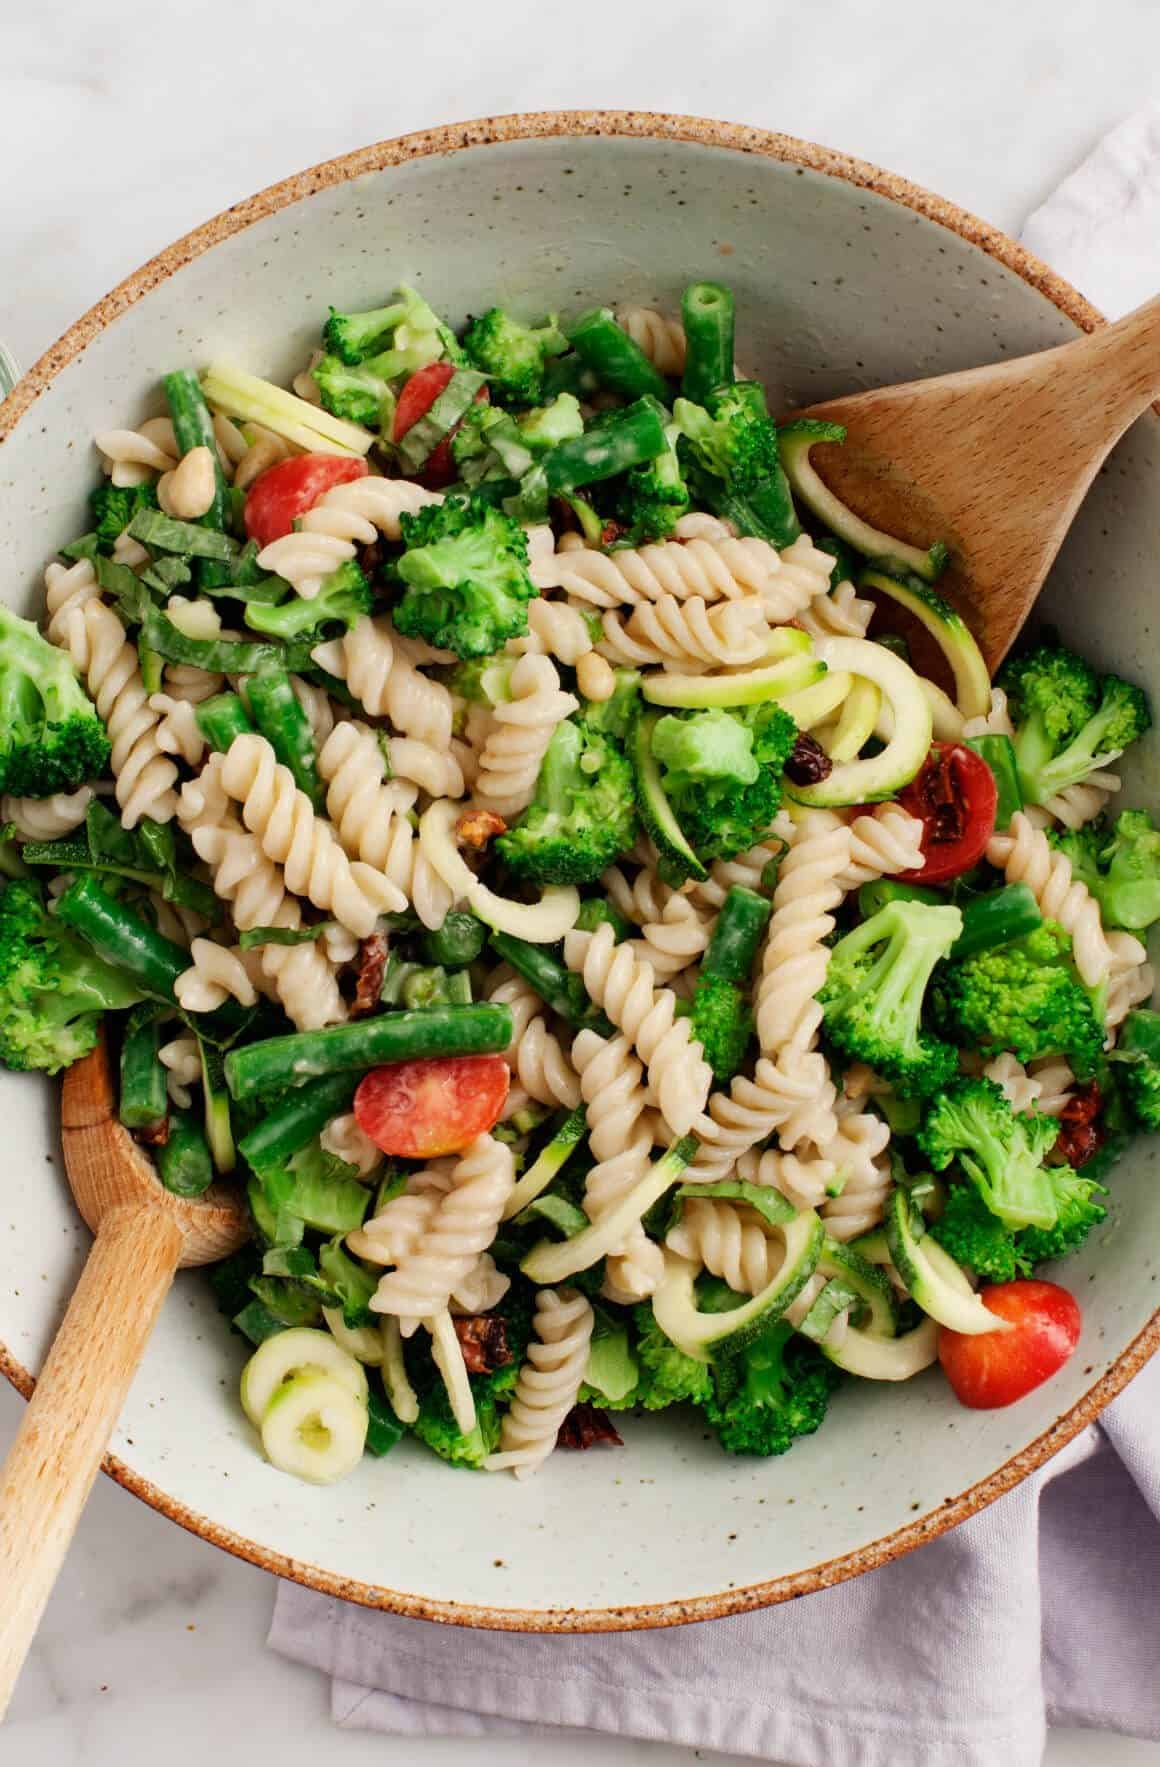 Top Recipes of 2016 - Broccoli Tahini Salad